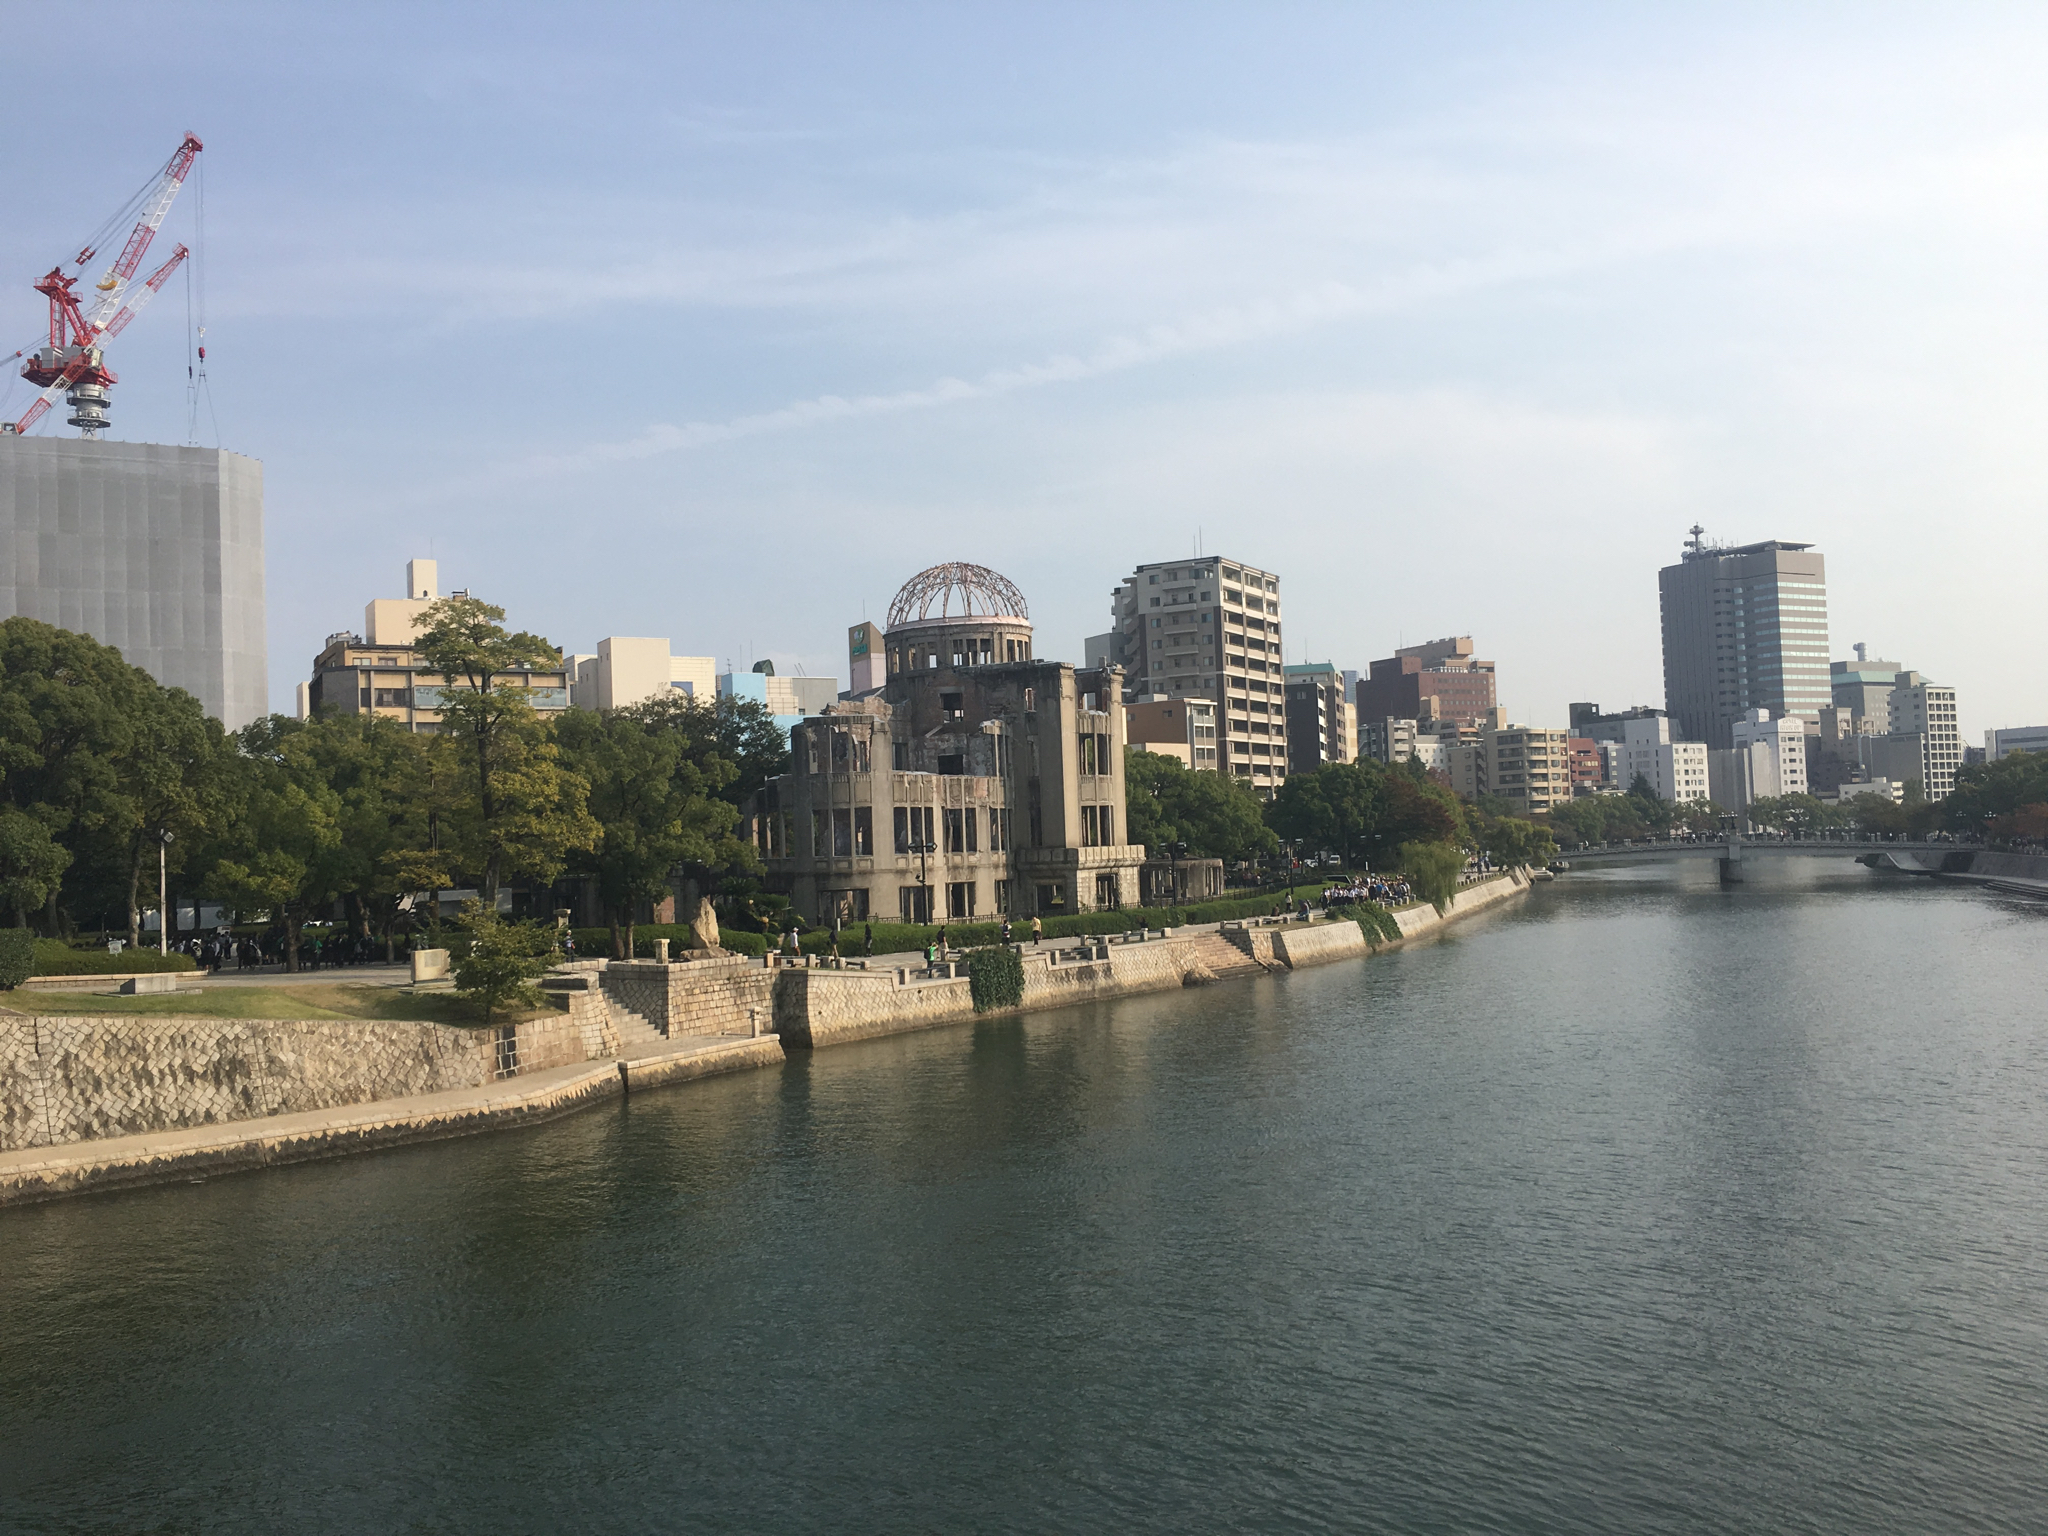 Atomic Bomb Dome. This structure was just below where the A-bomb detonated. It's been left standing as a memorial.